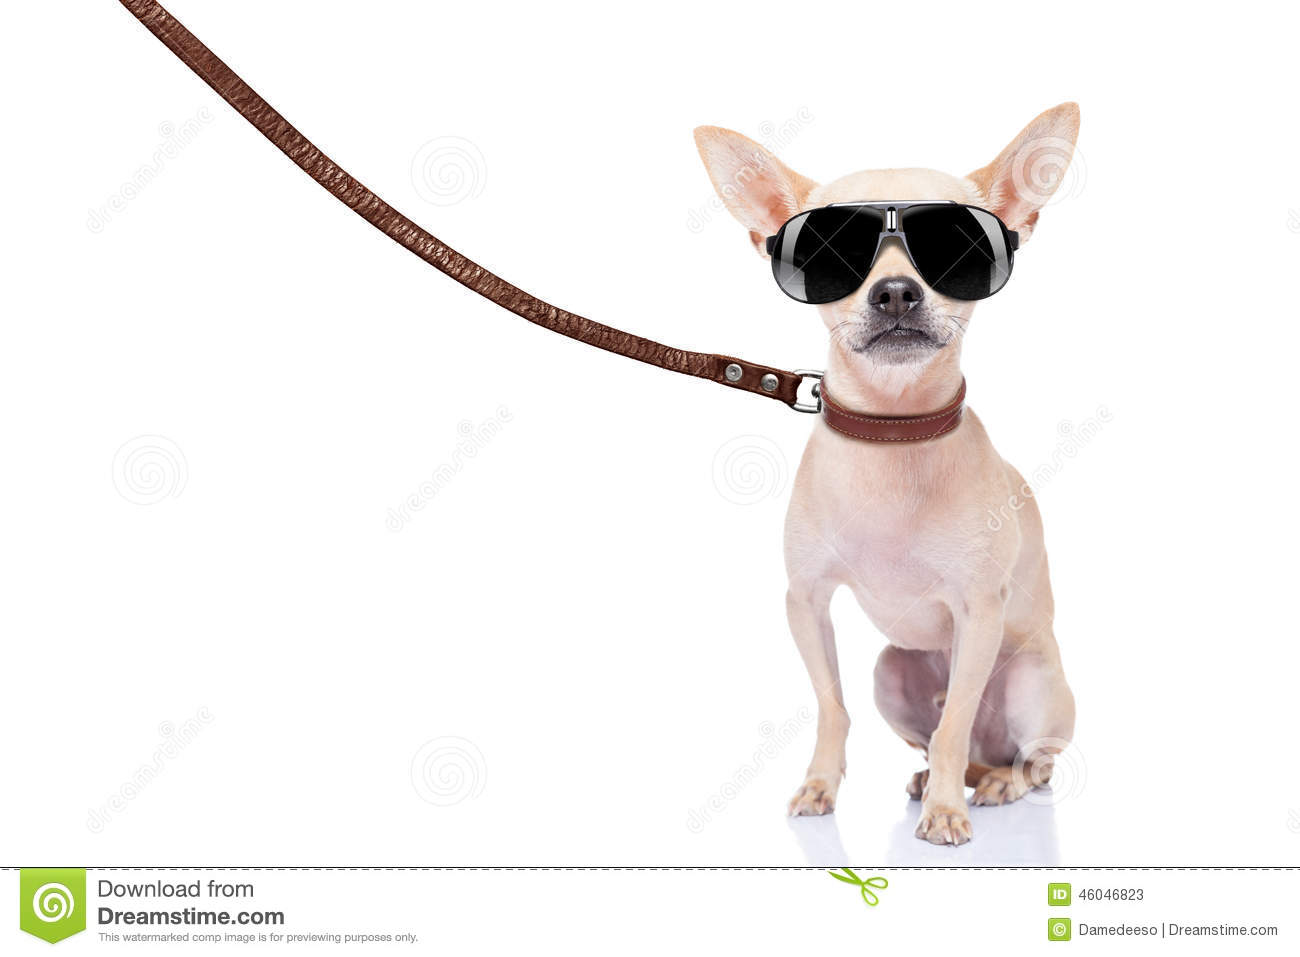 Dog Walker Stock Photo - Image: 46046823